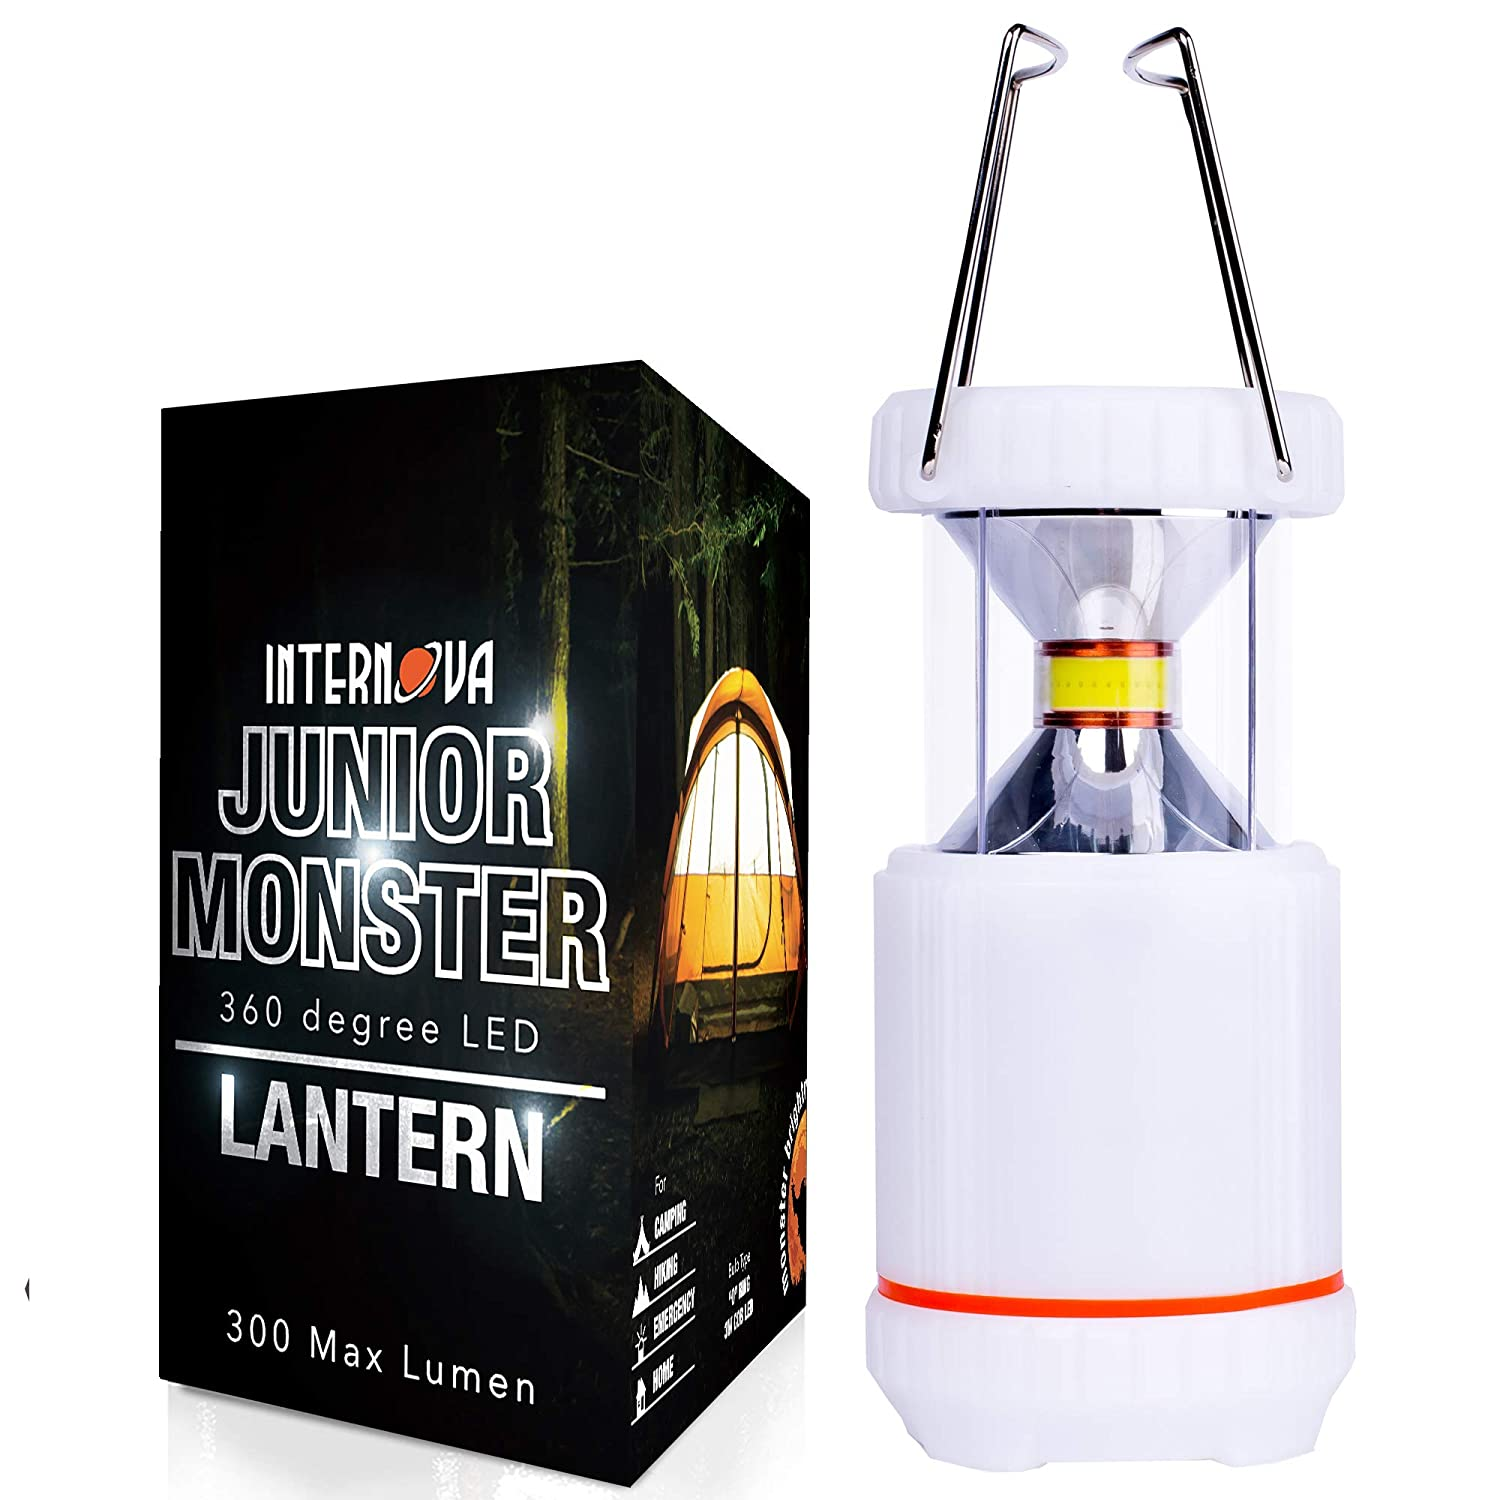 Amazon.com: Internova Junior Monster - Farol de camping ...